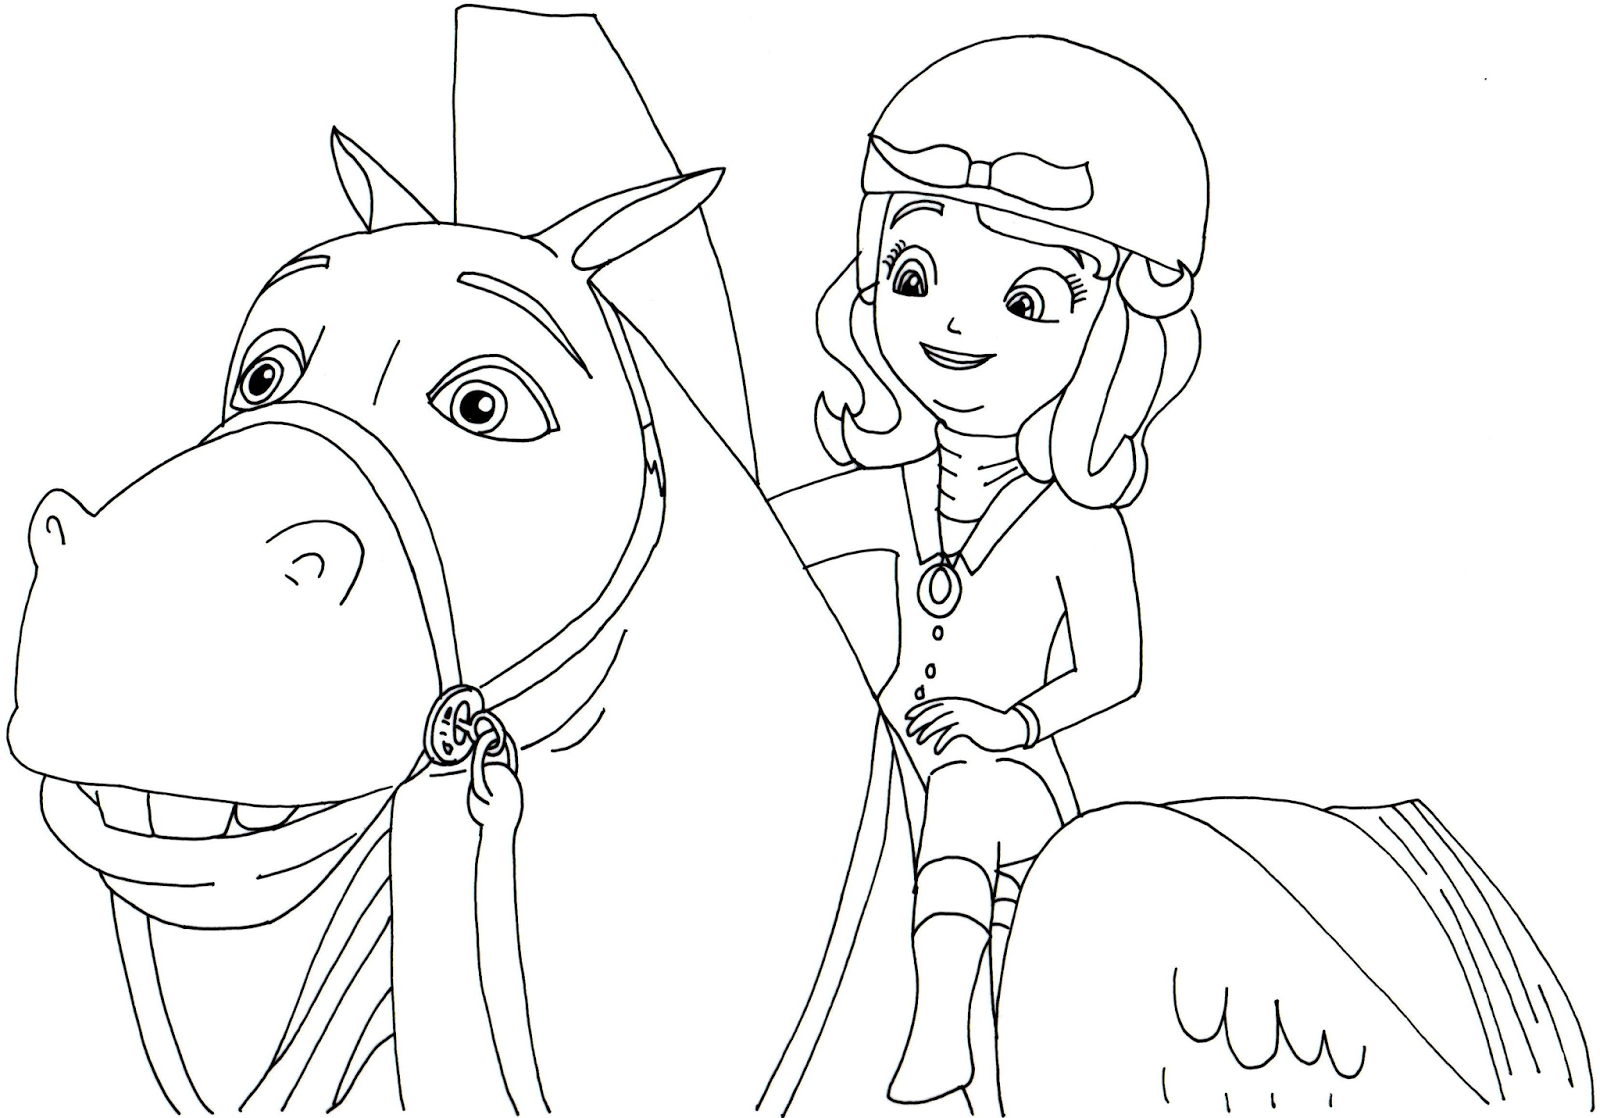 Coloring Pages Sofia The First Free Coloring Pages sofia the first printable coloring pages az 1000 images about on pinterest first